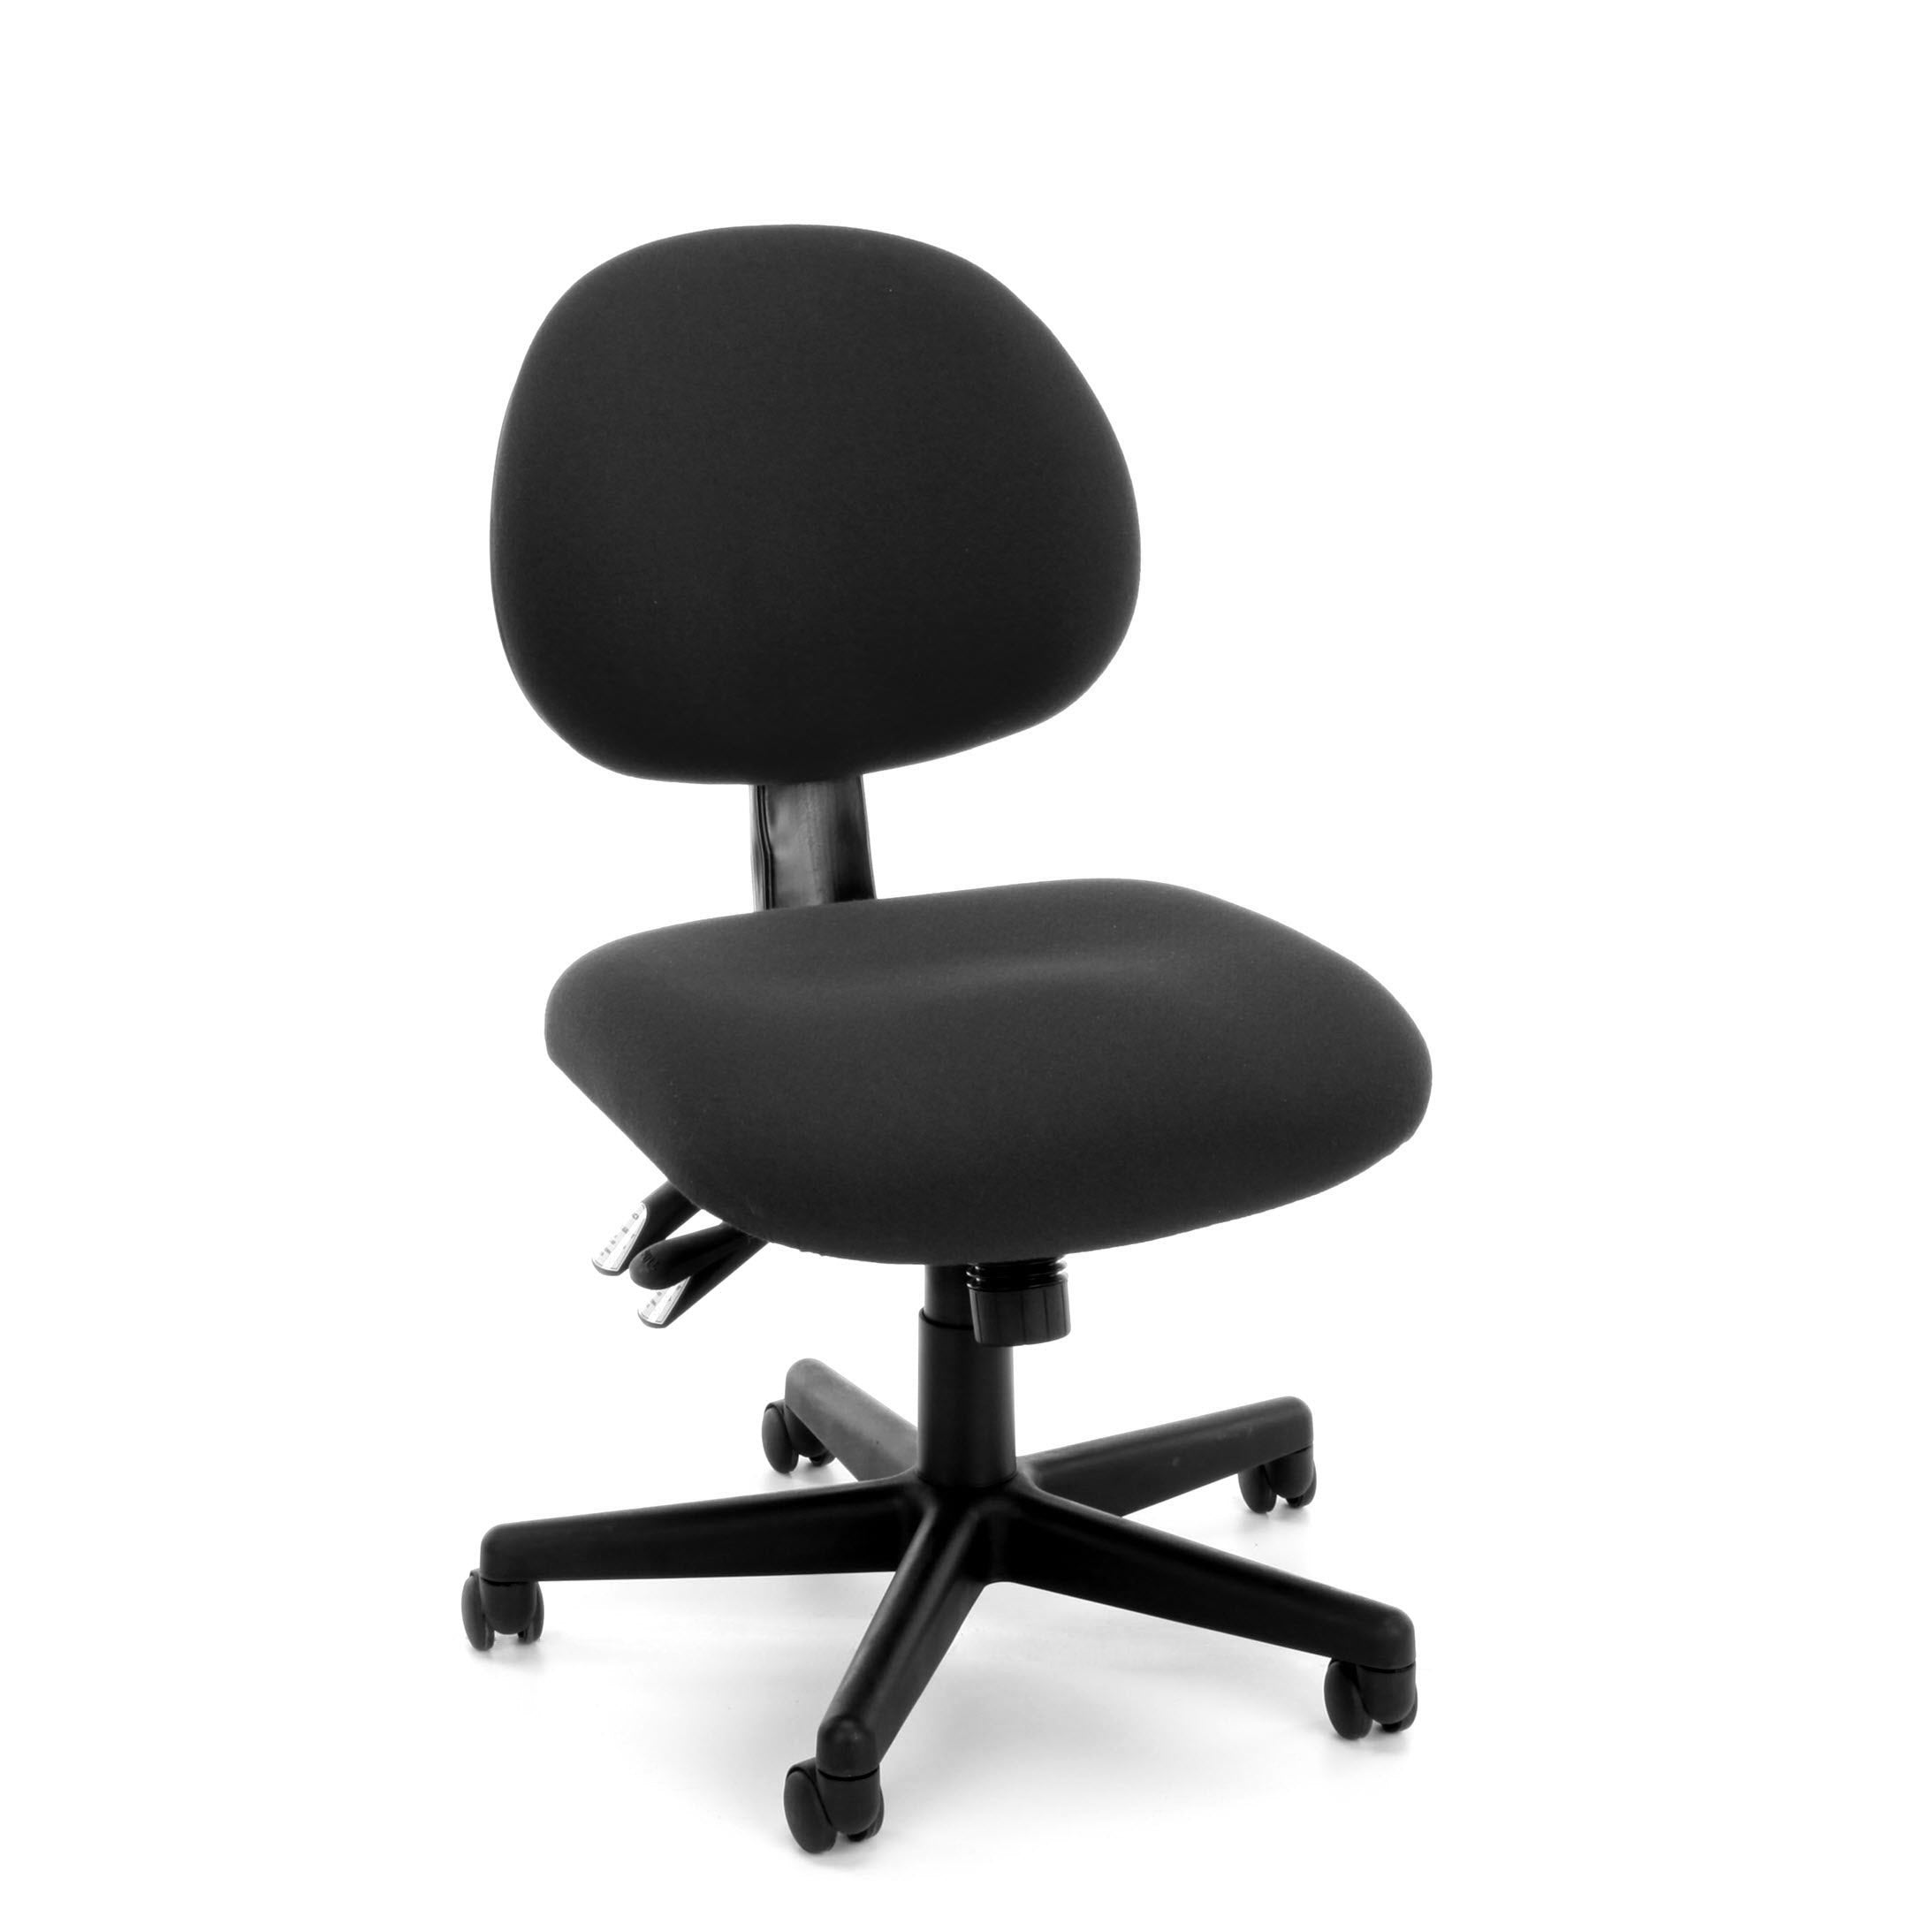 Ergonomic Multi-Adjustable Upholstered Armless Task Computer Chair